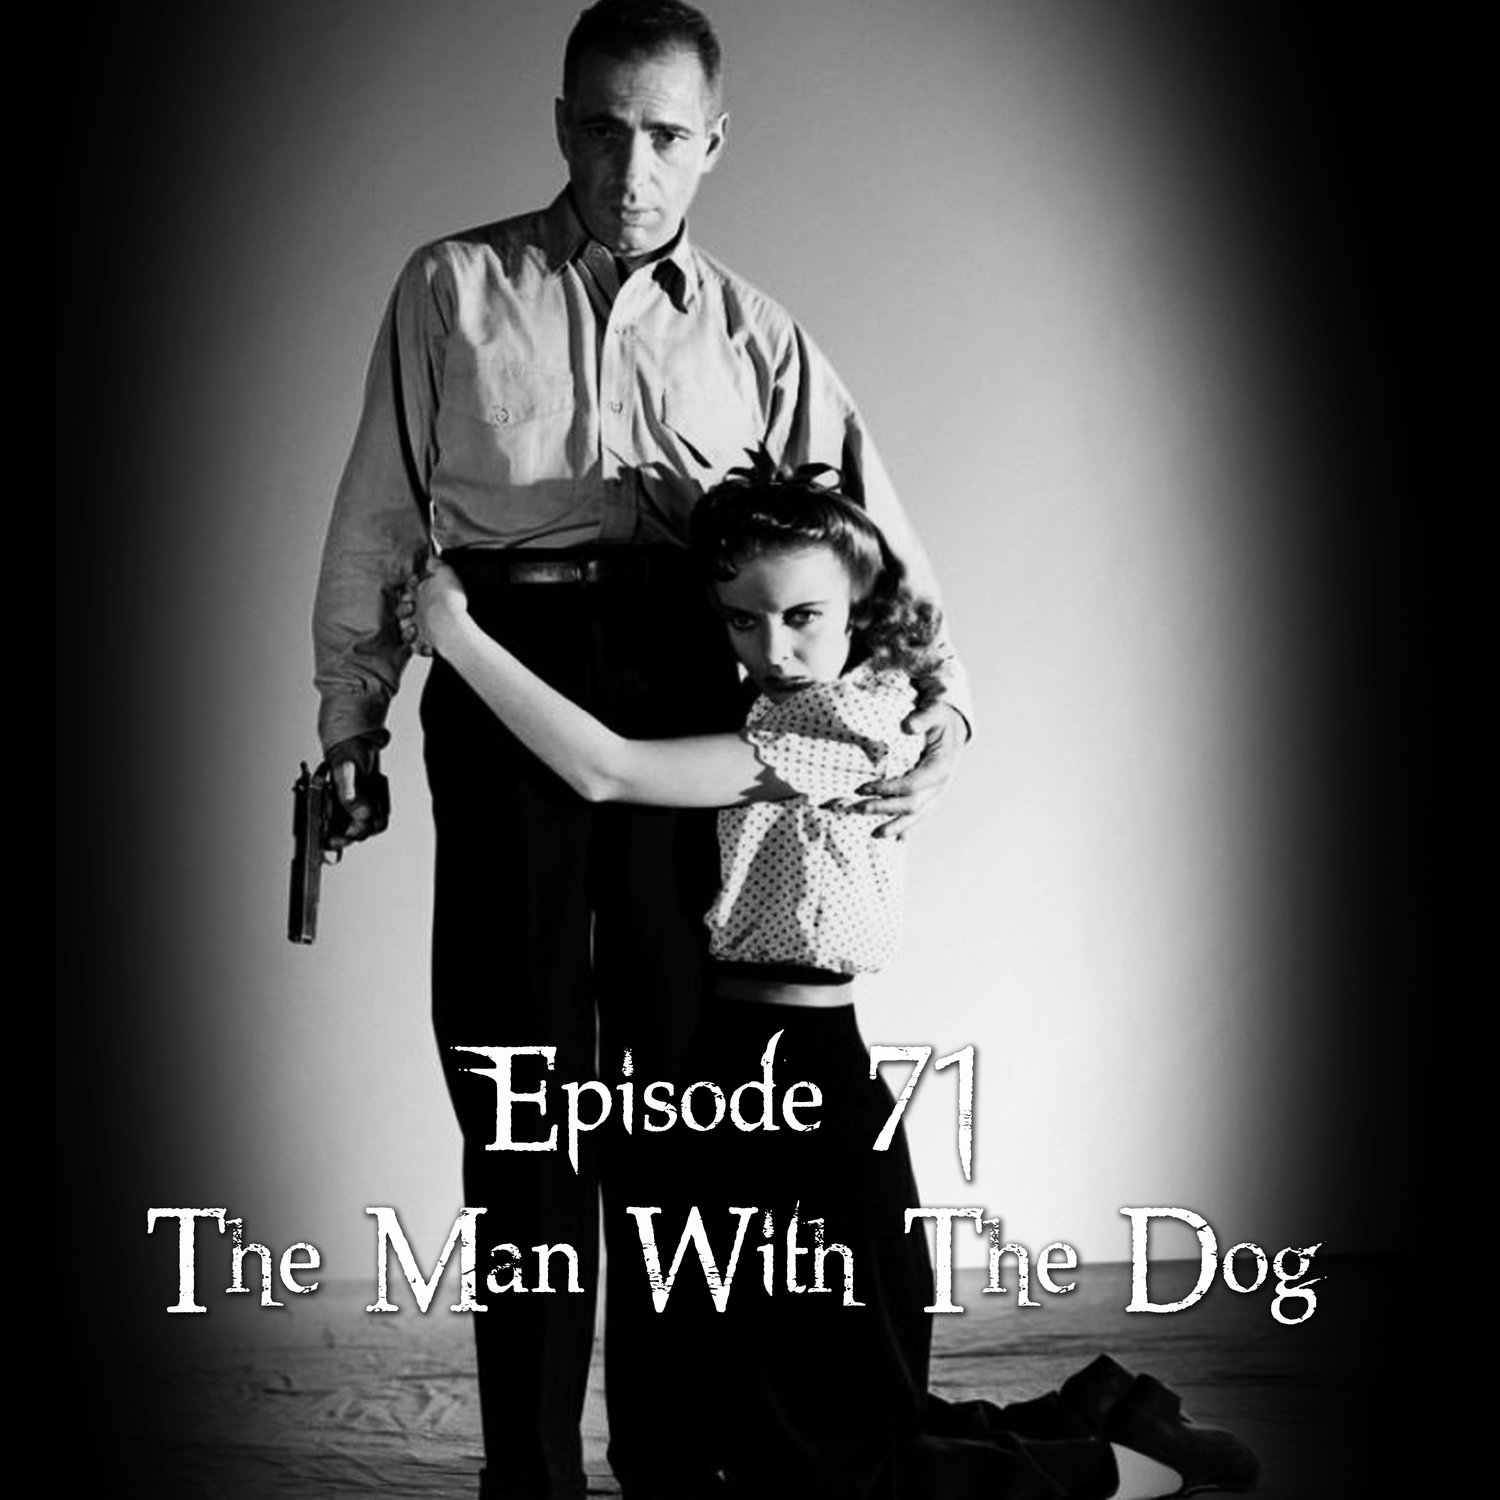 Episode 71: The Man With The Dog